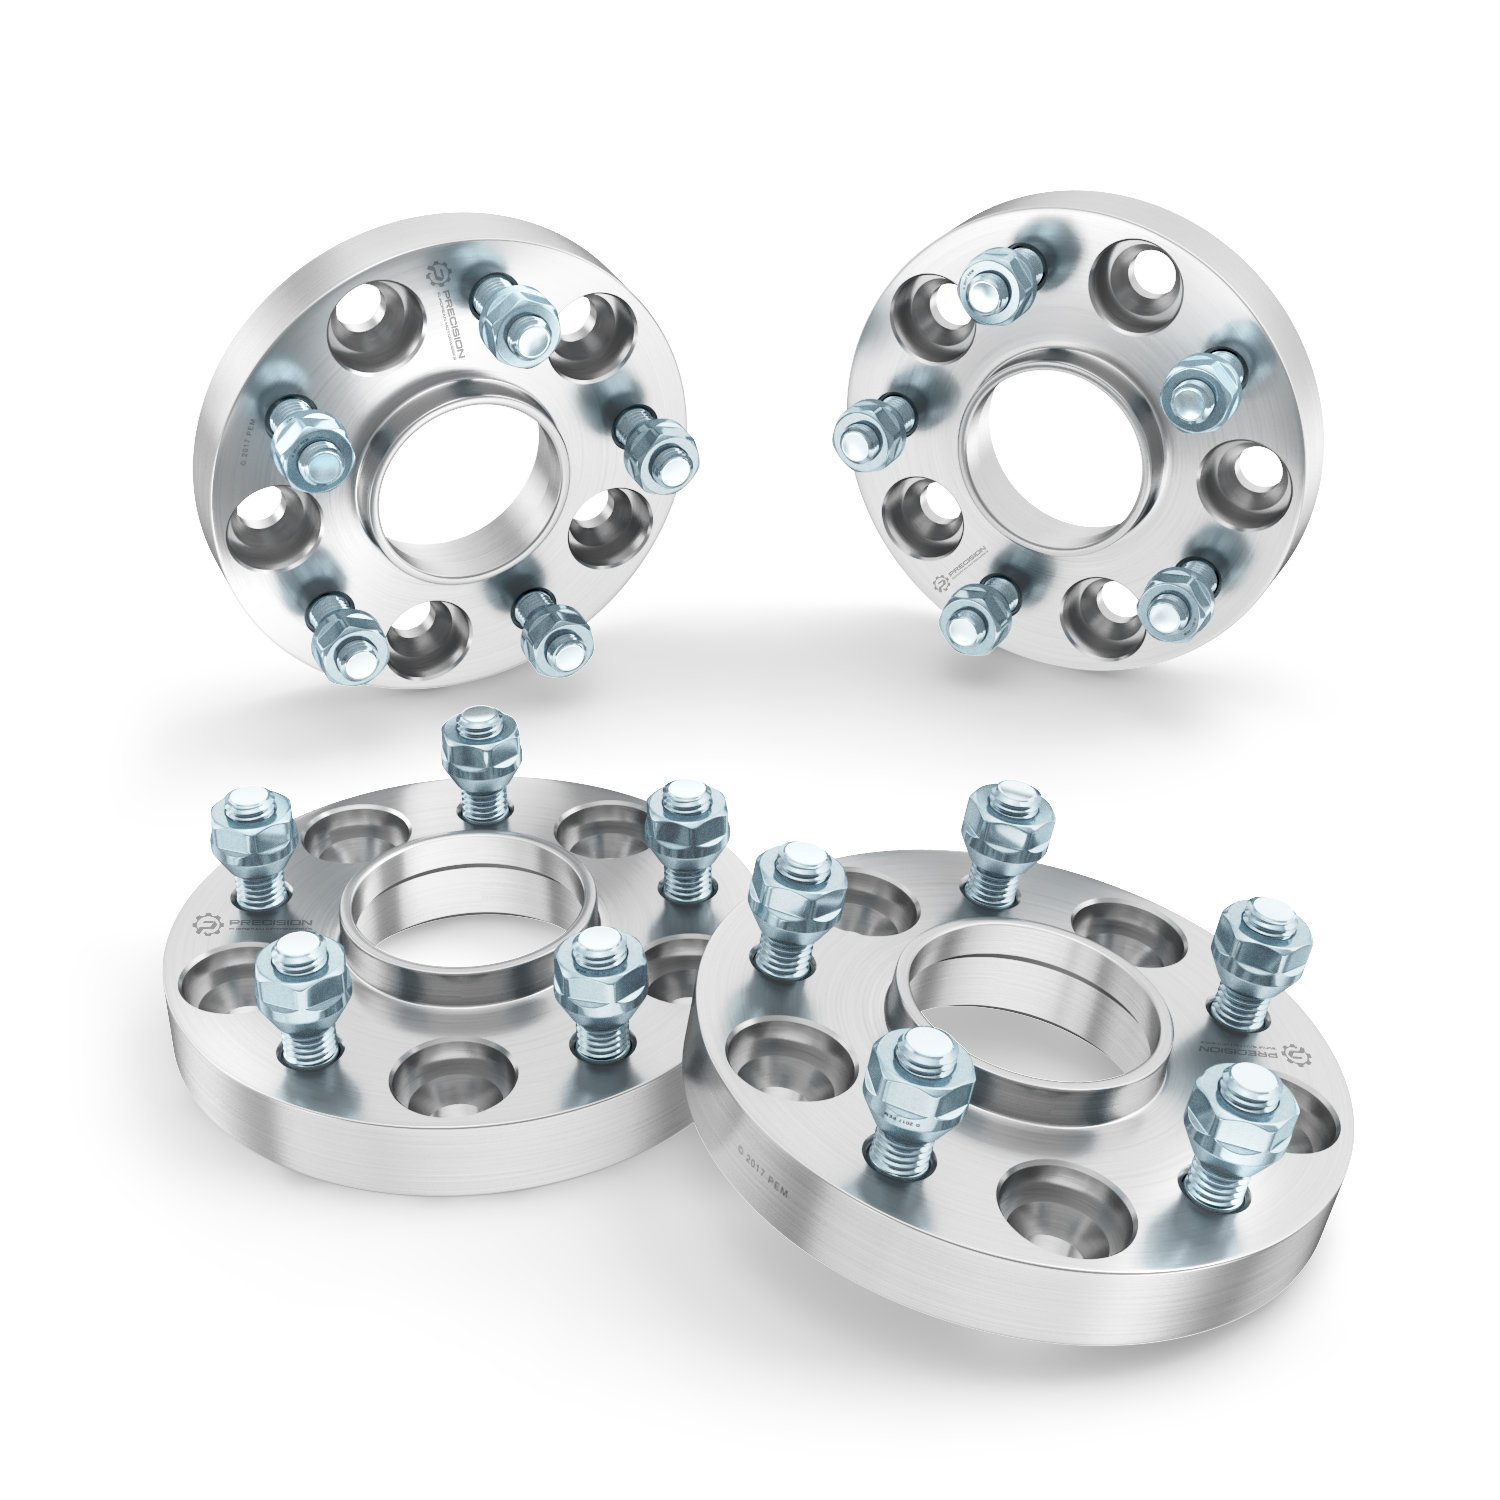 Silver 25mm 5x127 2pcs 07-18 Wrangler JK JKU 71.5mm Bore, 1//2x20 Studs Compatible with Jeep 99-10 Grand Cherokee WJ WK RockTrix 1 inch Hubcentric 5x5 to 5x5 Wheel Spacers 06-10 Commander XK